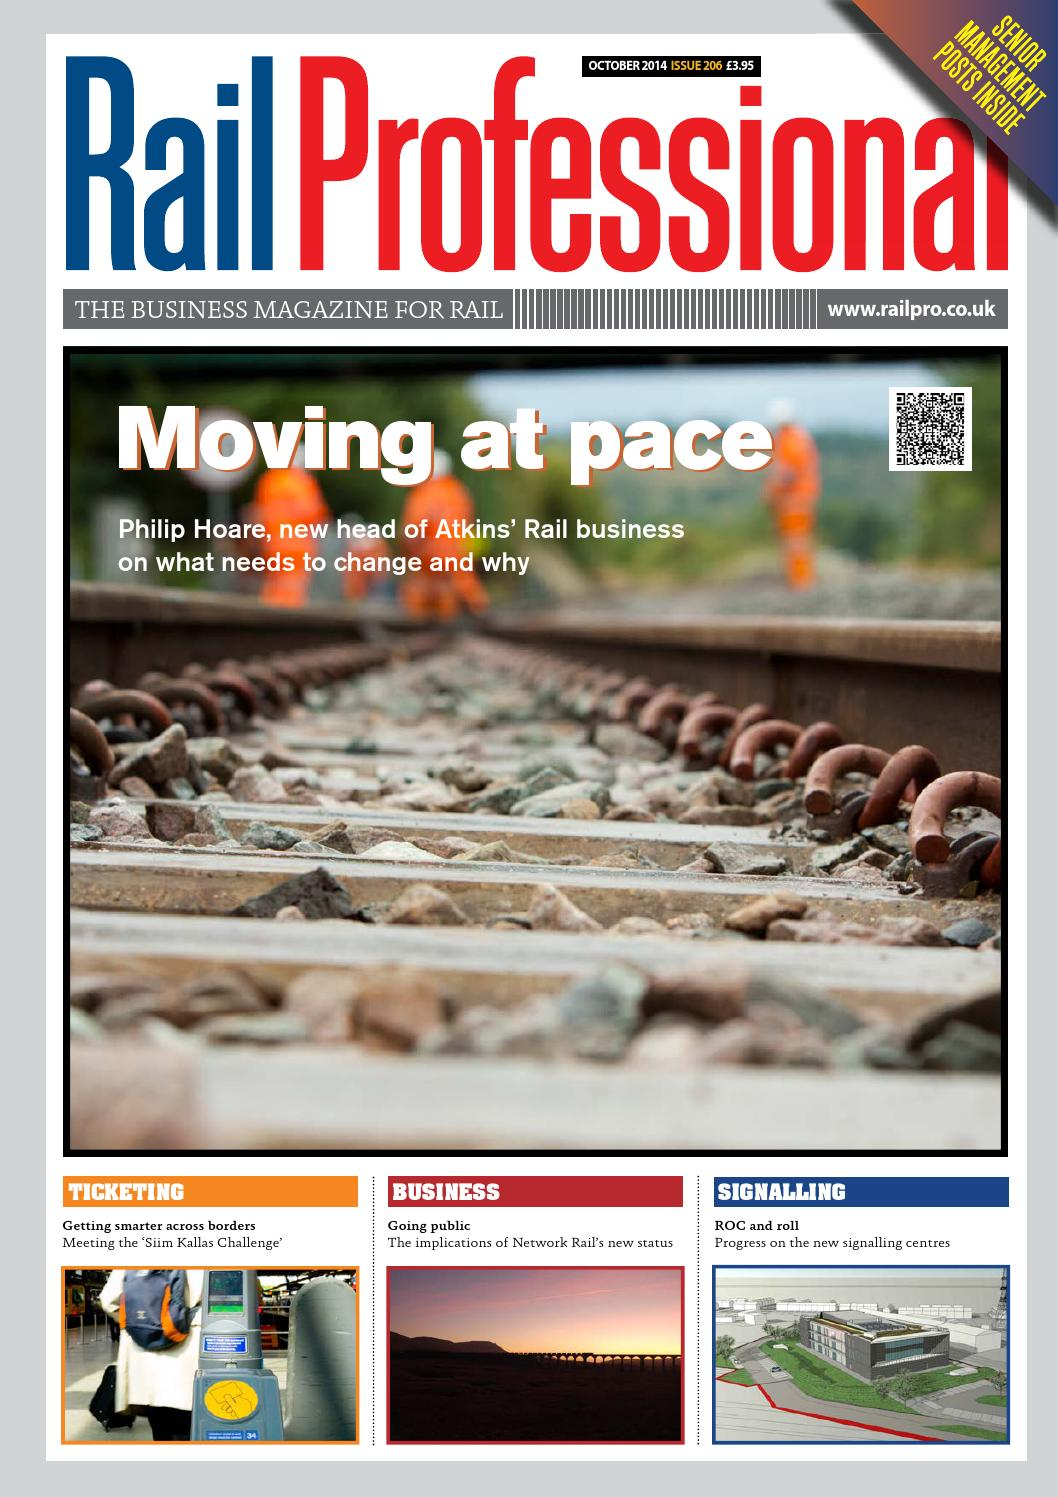 Rail Professional October 2014 Issue By Magazine Wiring Heat Tape To Dimmer Switch Reptile Forums Information Issuu